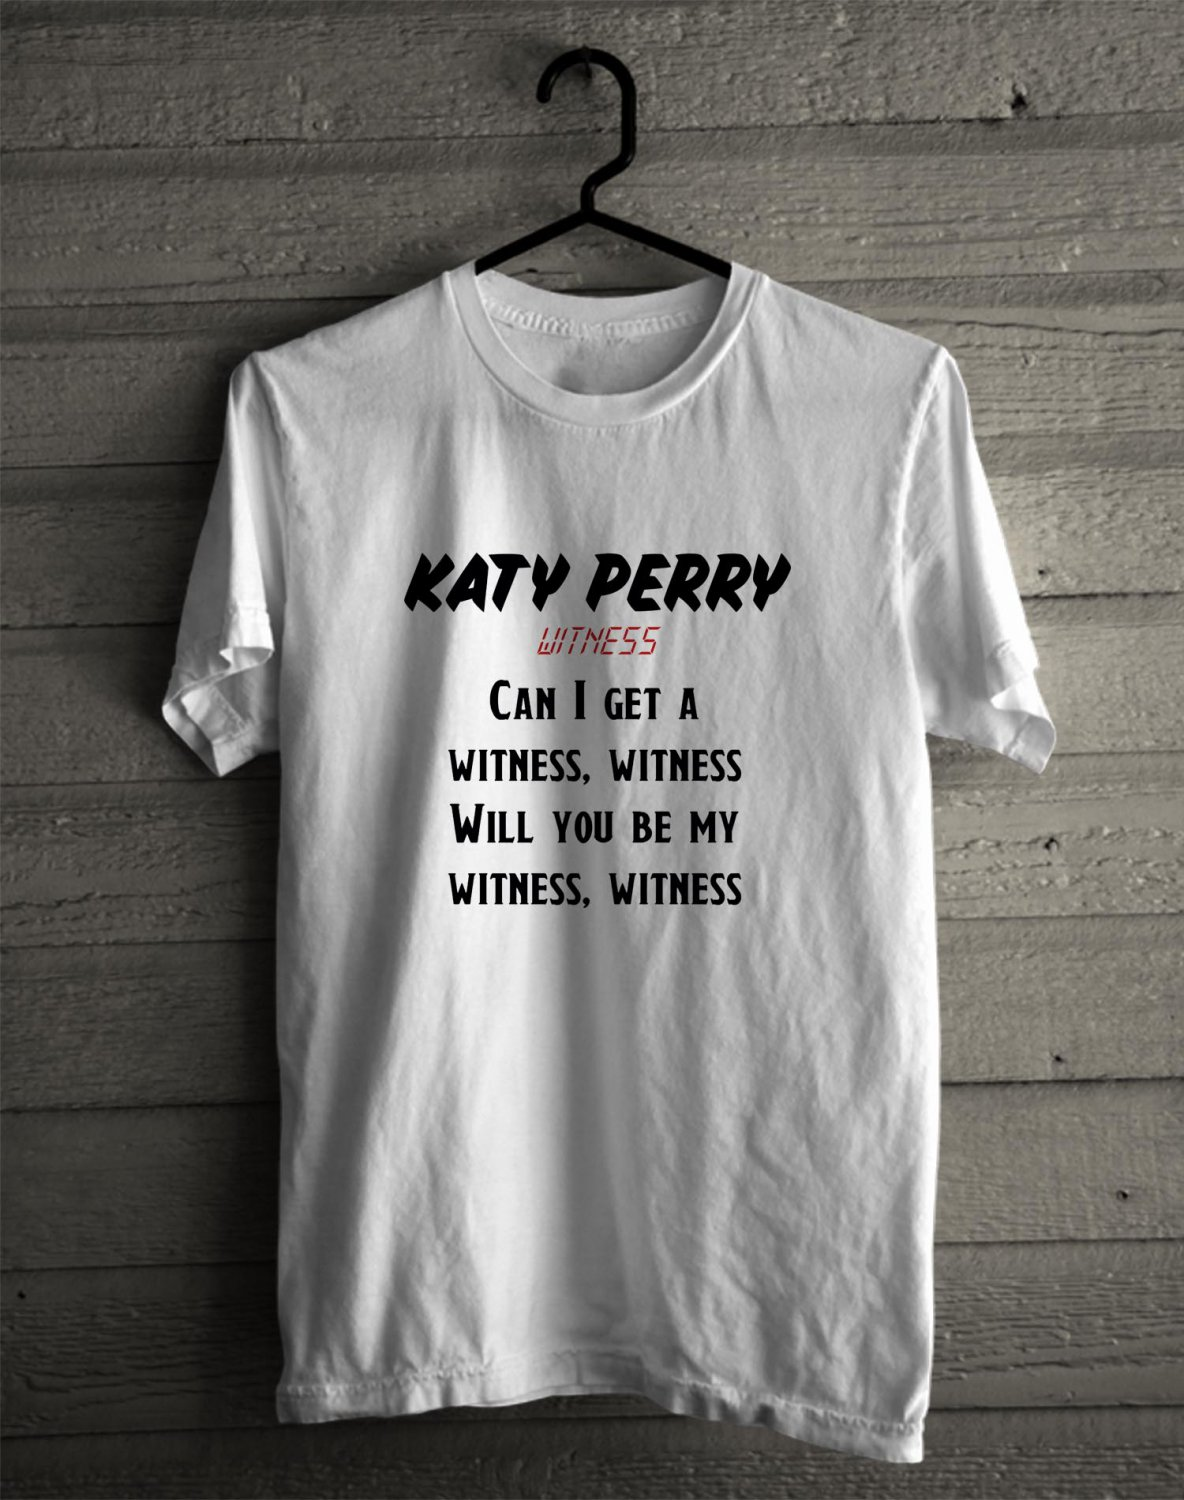 Katy Perry Witness Lyric 2017 White Tee's Front Side by Complexart z1